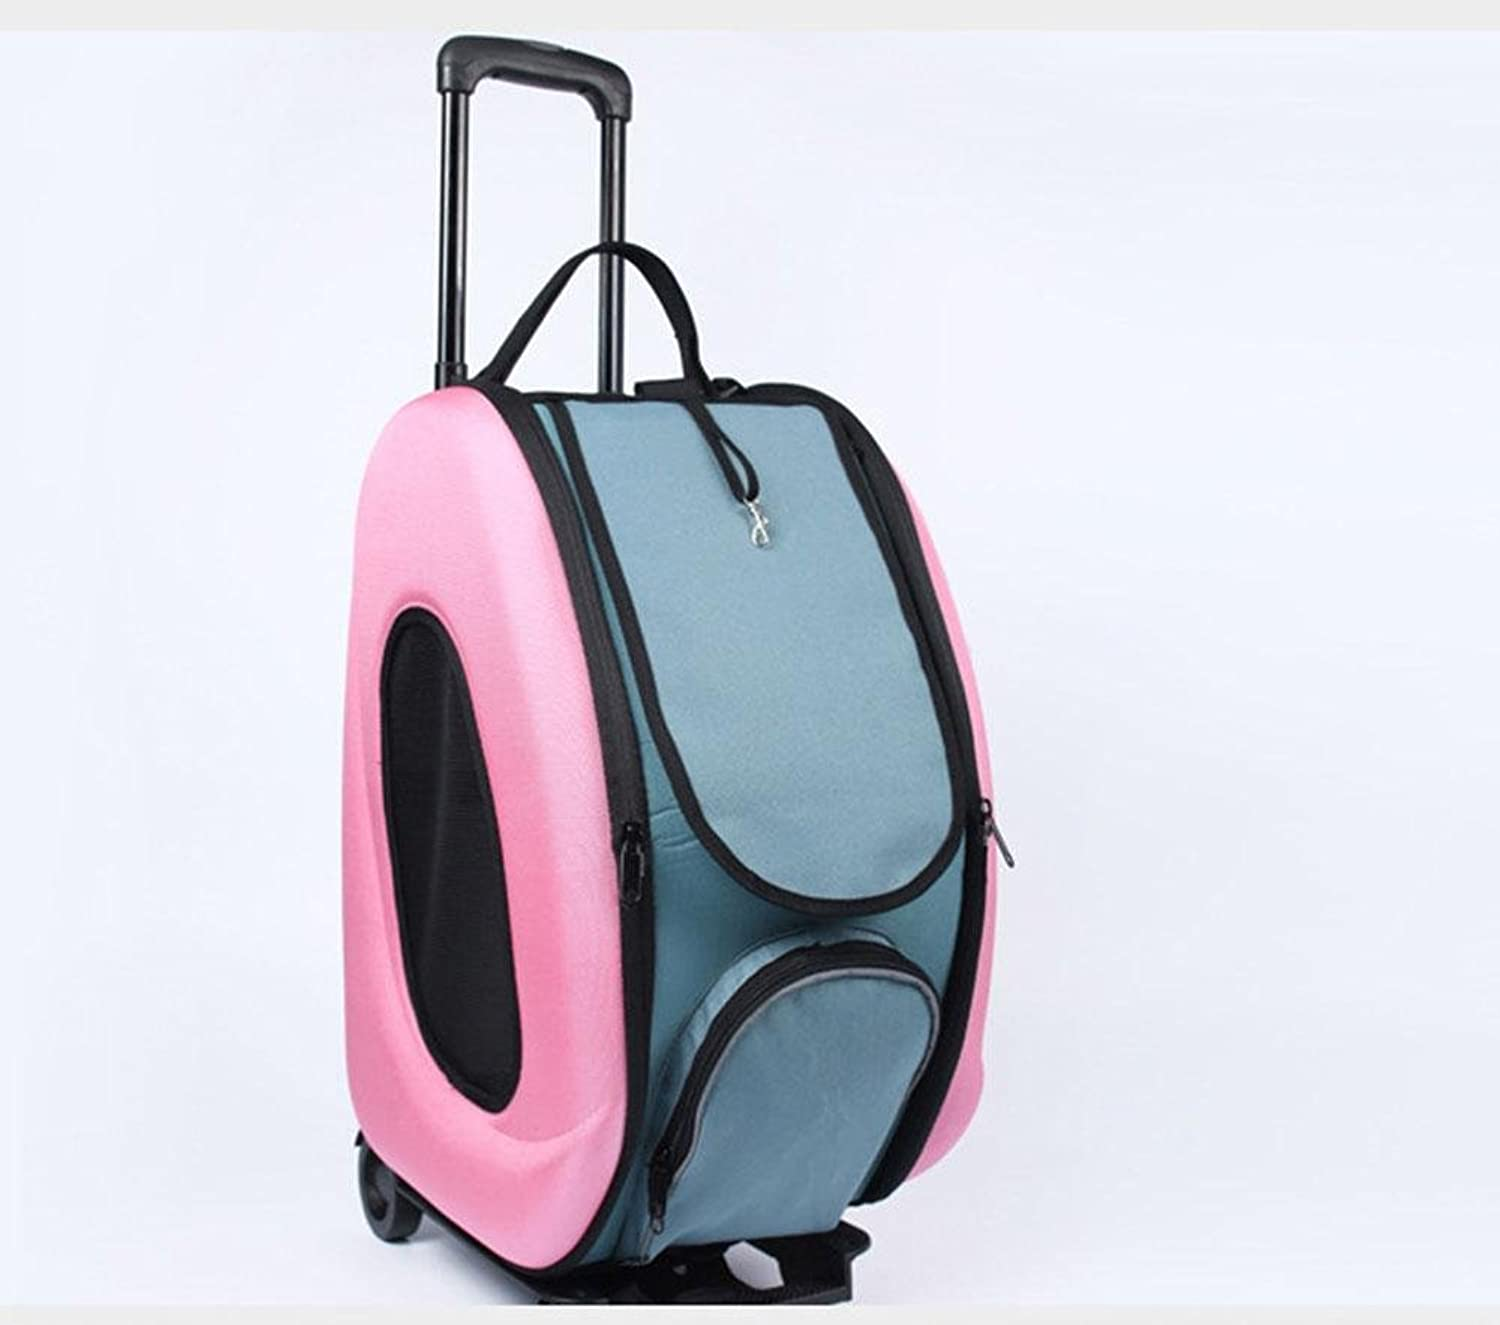 Pet Stroller Dog Trolley Backpack with Top Window Suitable,503330 cm , Pink